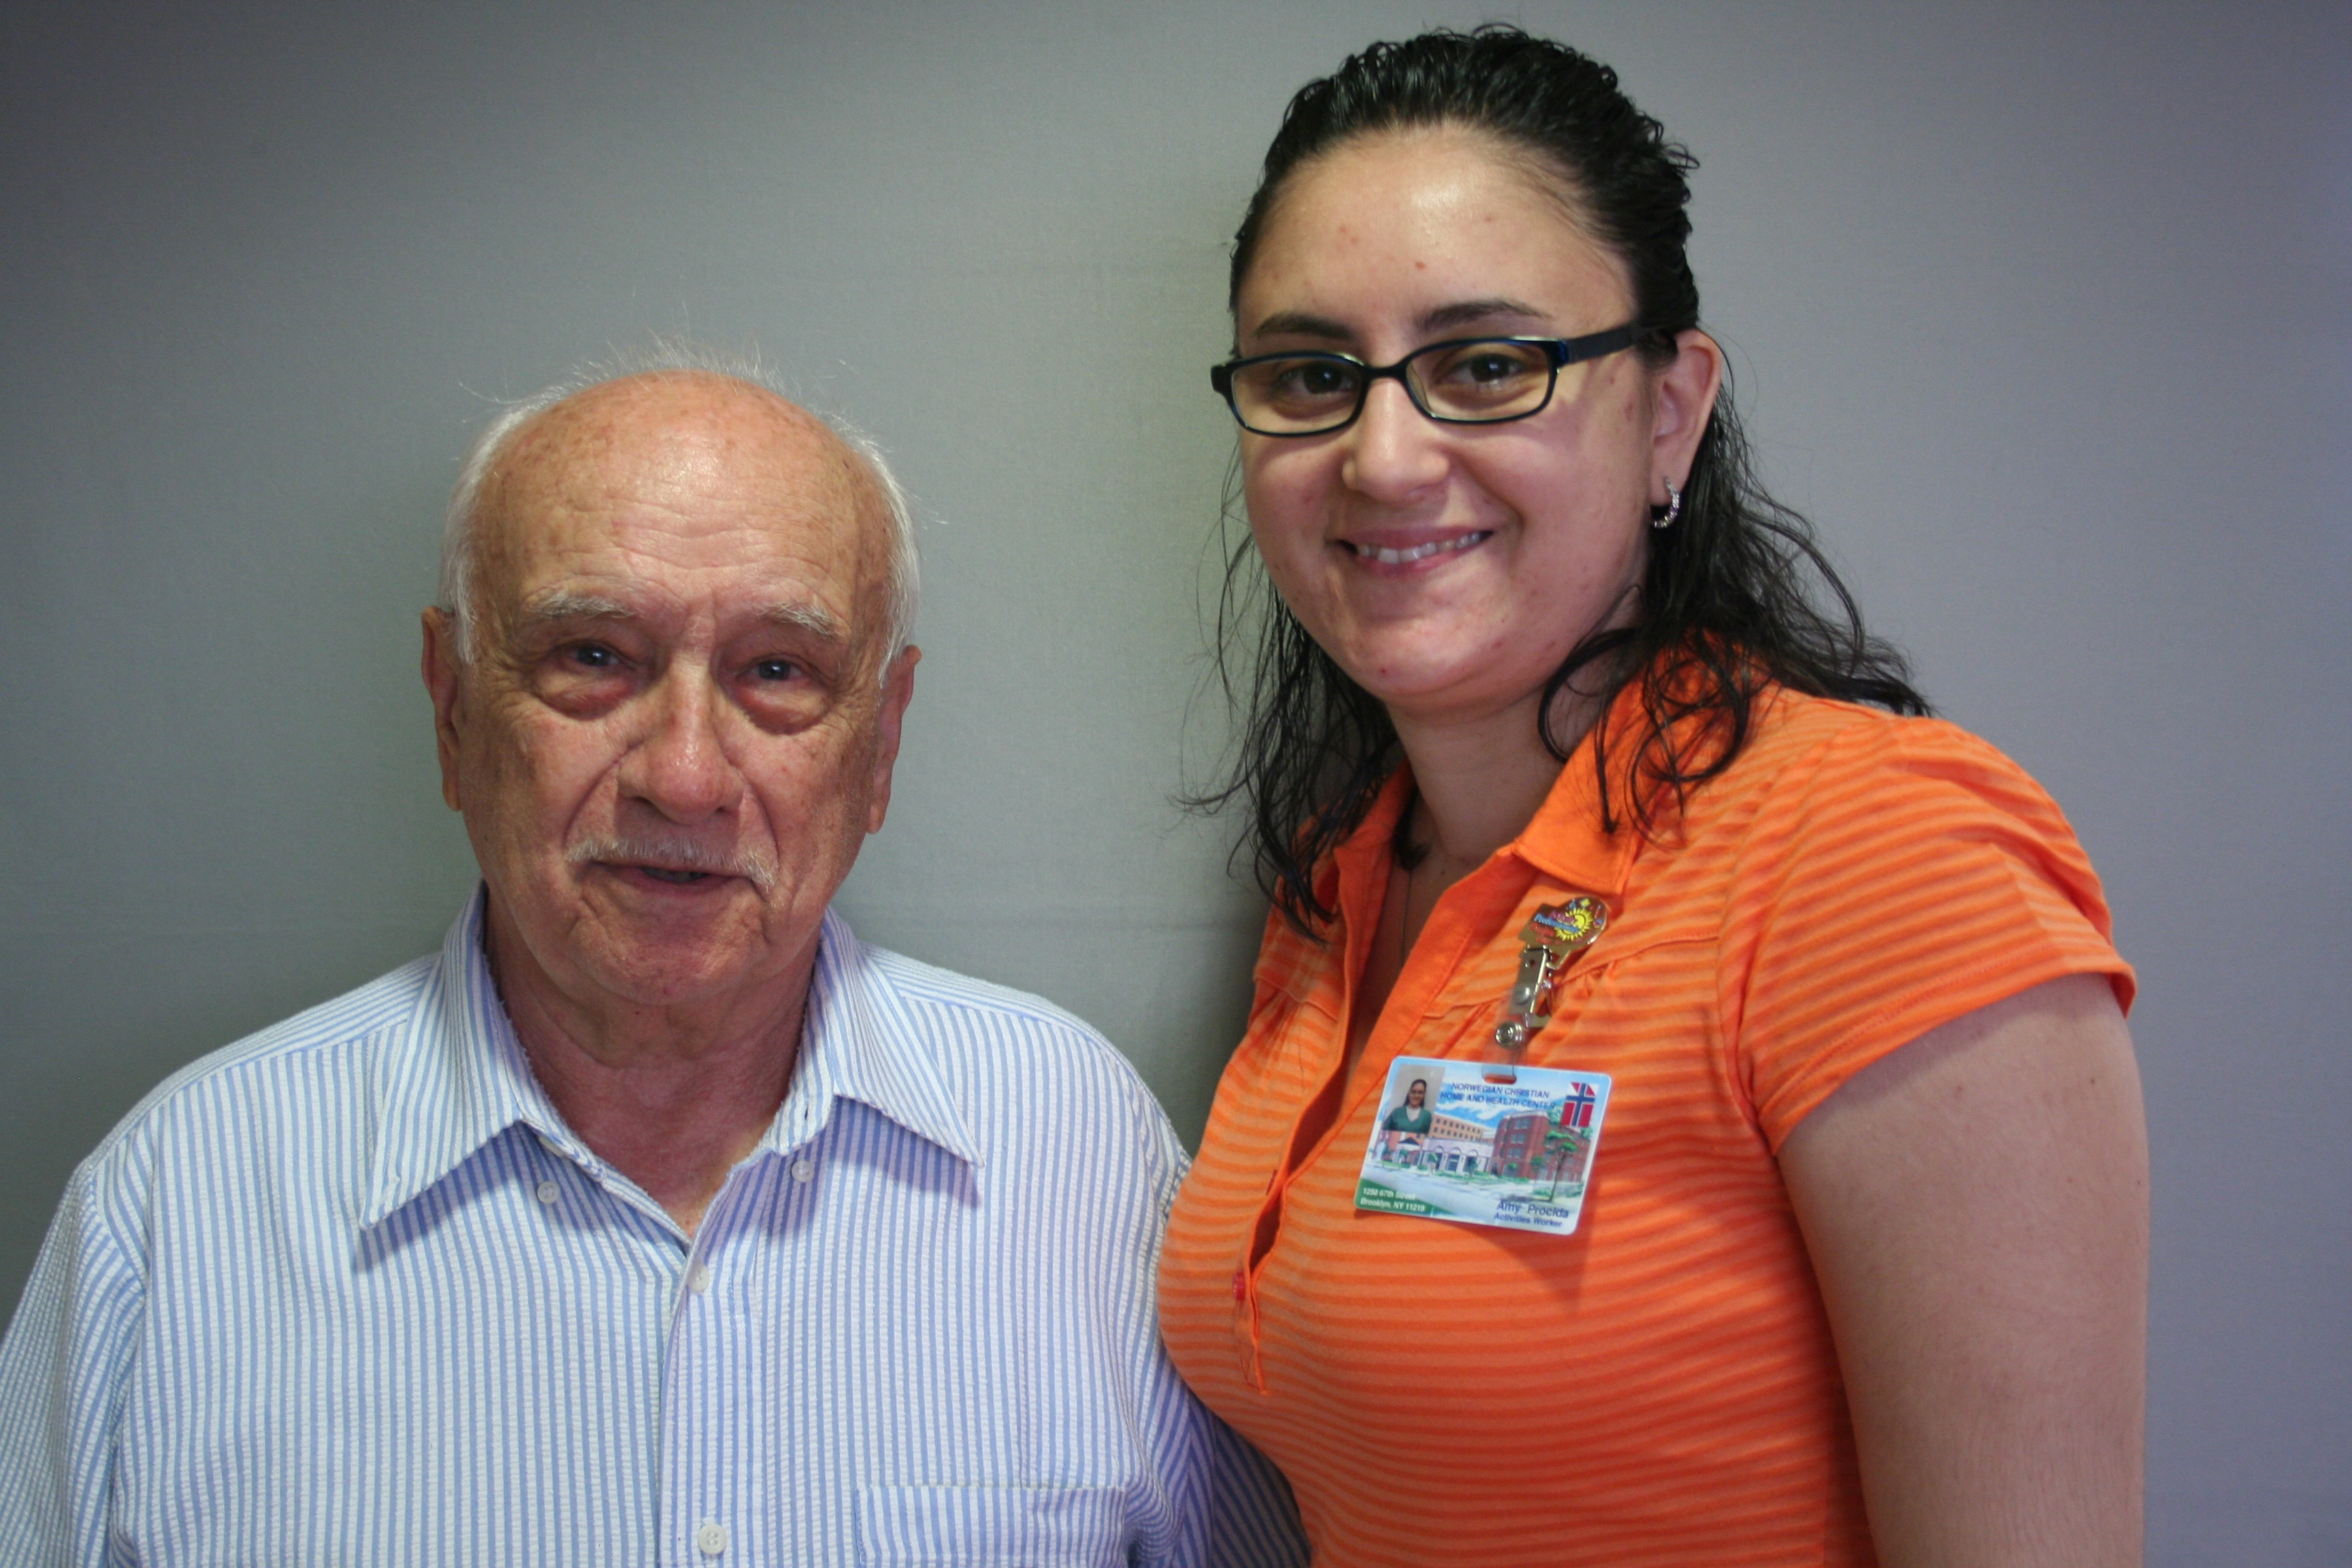 StoryCorps: Anthony Fabietti & Amy Christodoulou